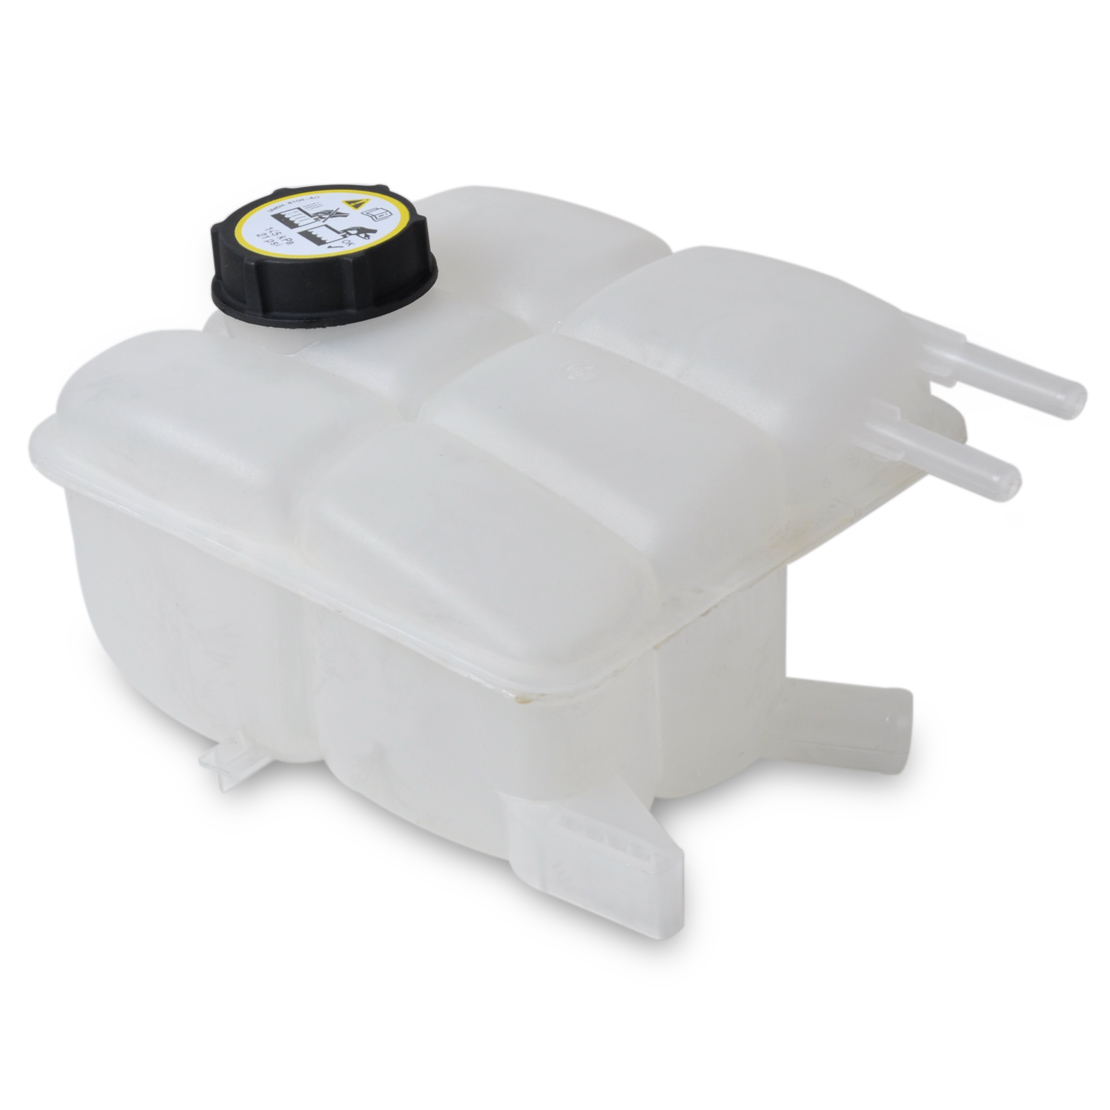 CITALL 3M5H8100AD Coolant Recovery Tank Reservoir Radiator Cap for MAZDA 3 MAZDA3 2004 2005 2006 2007 2008 2009 2010 2011 2012CITALL 3M5H8100AD Coolant Recovery Tank Reservoir Radiator Cap for MAZDA 3 MAZDA3 2004 2005 2006 2007 2008 2009 2010 2011 2012